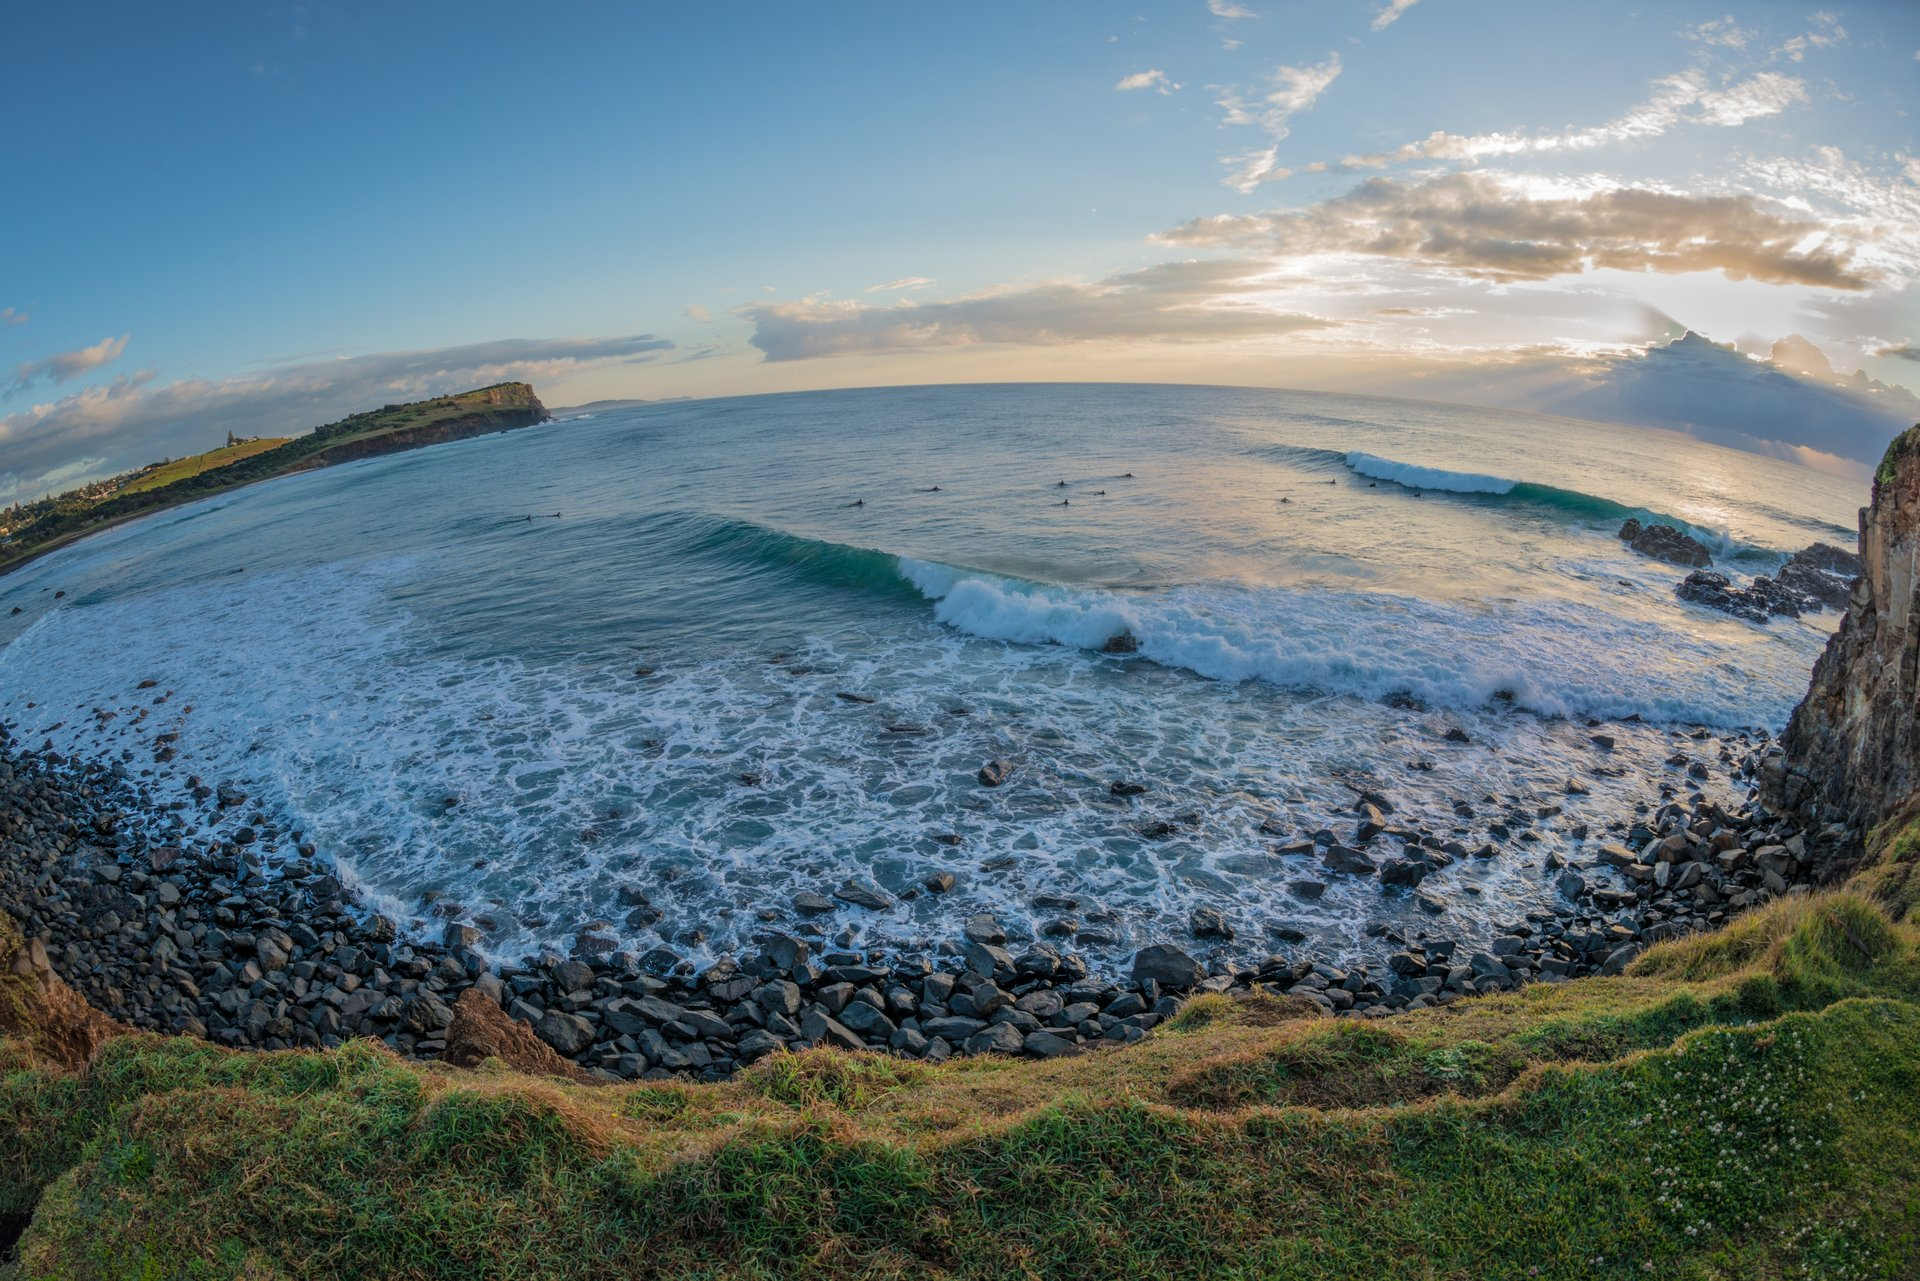 MonteRegoPhotography's photo of Lennox Head